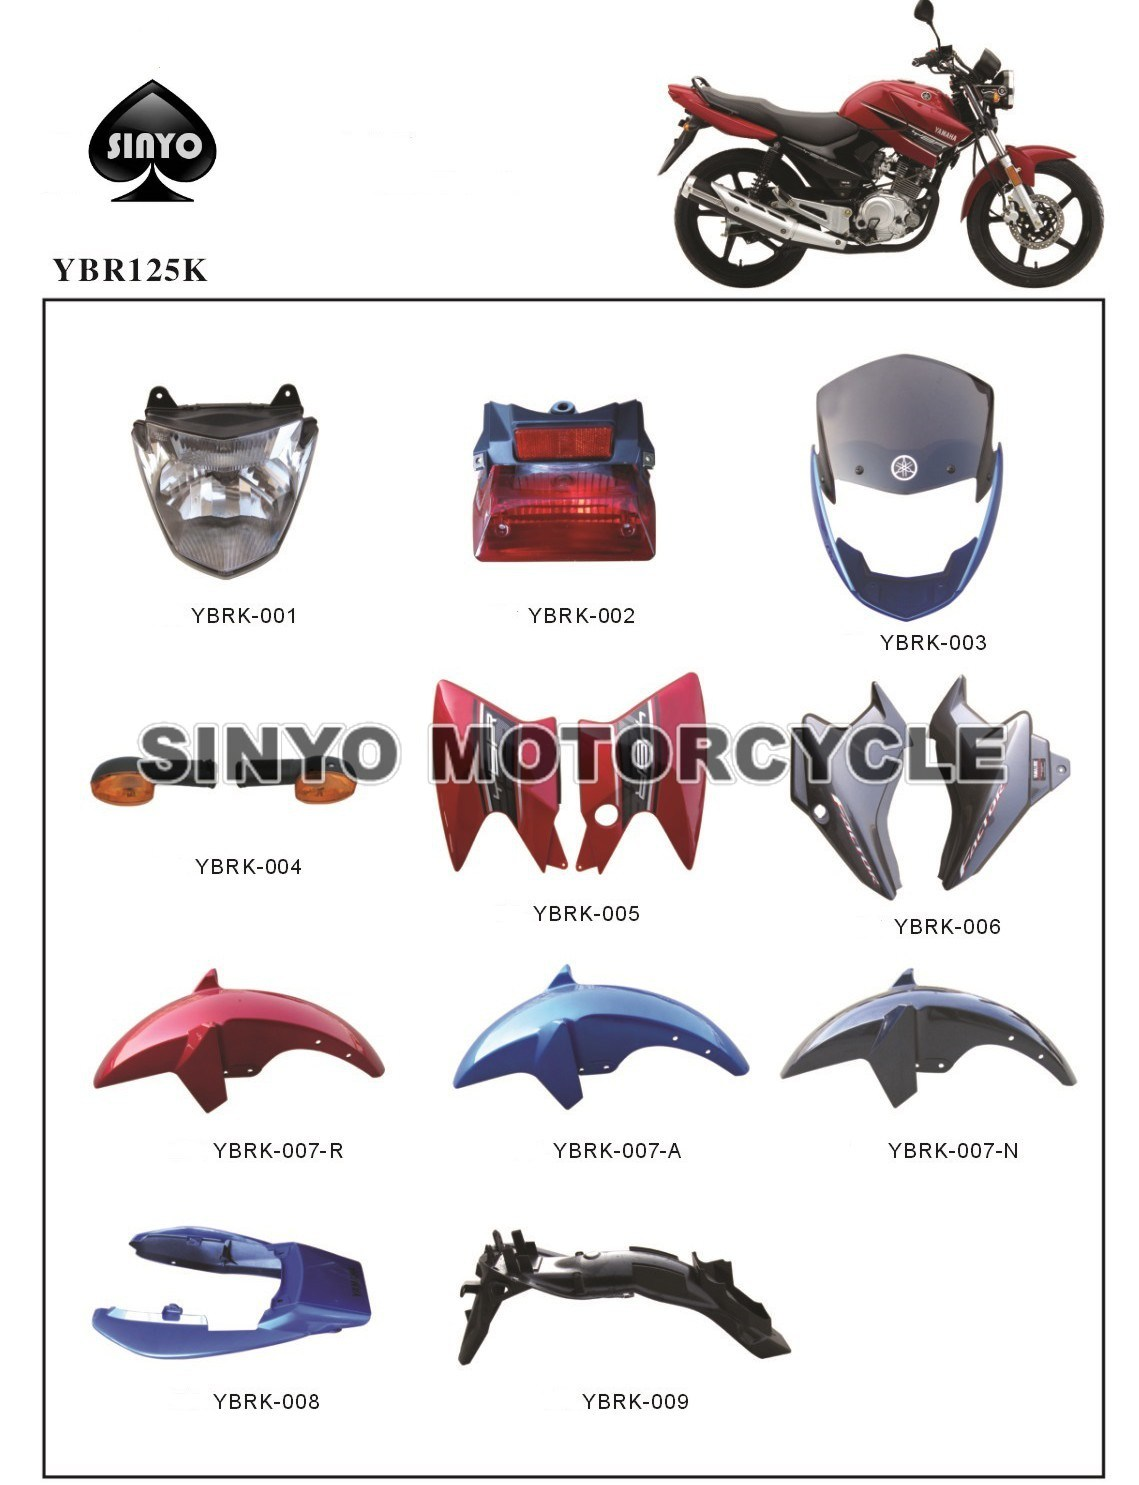 Wholesale Honda Motorcycle Parts Buy Reliable Repair Information Ybr125 Spare For